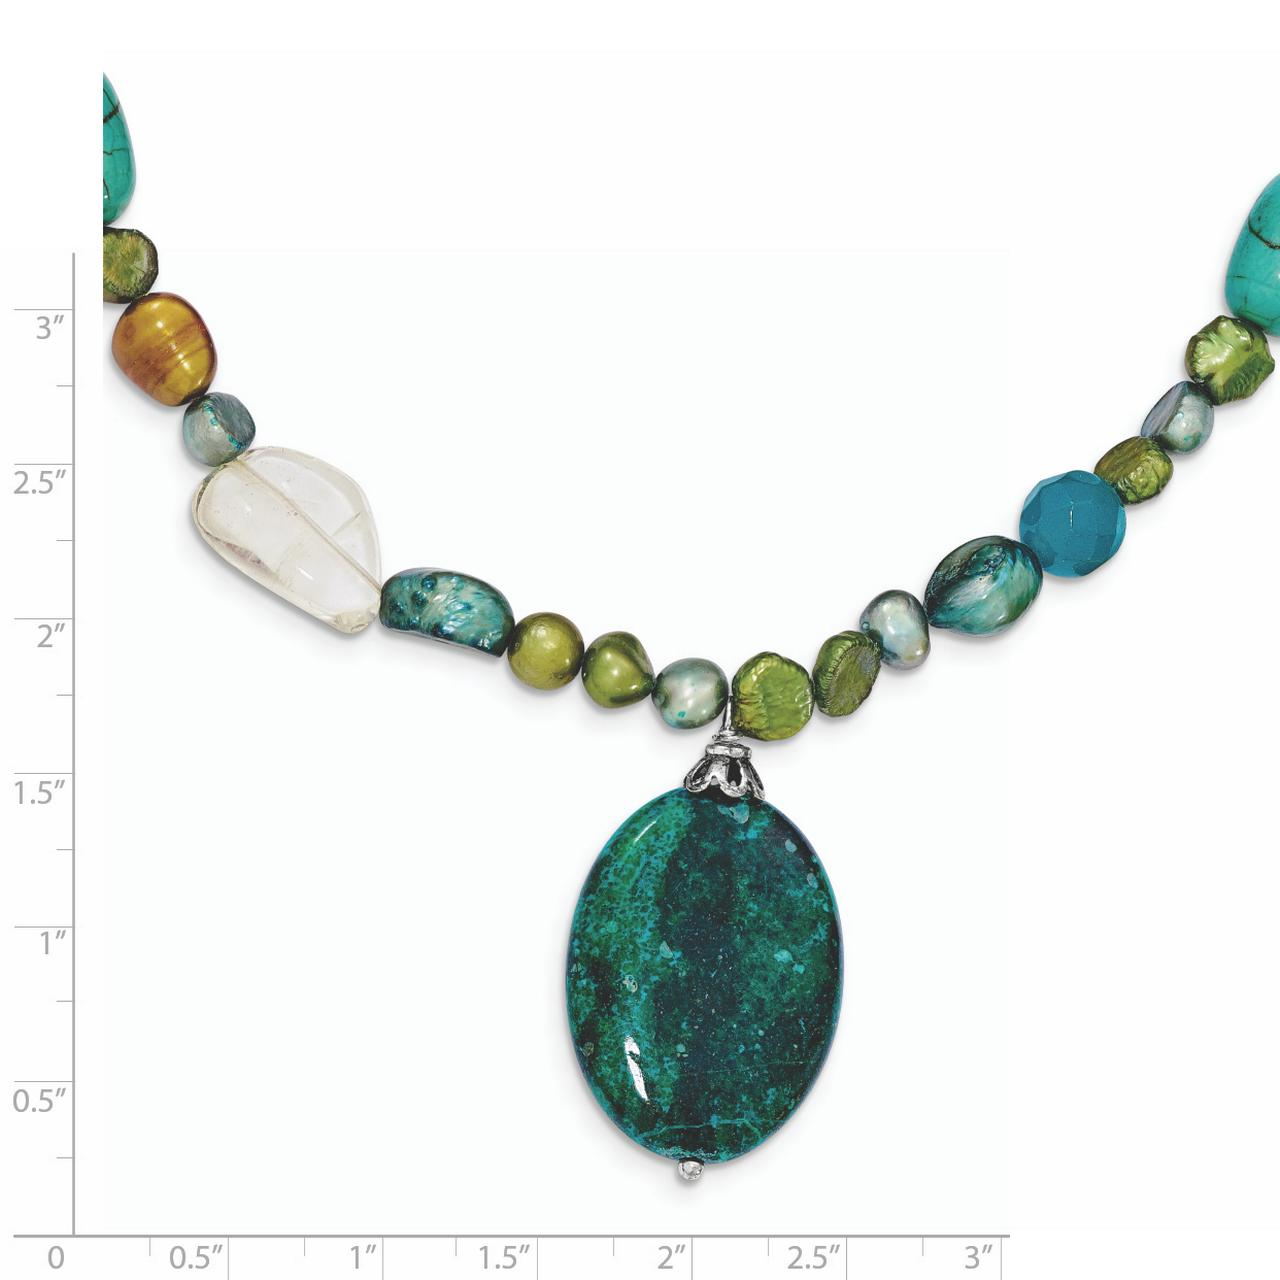 Natural Chrysocolla Solid 925 Sterling Silver Pendant Necklace Gift Jewelry